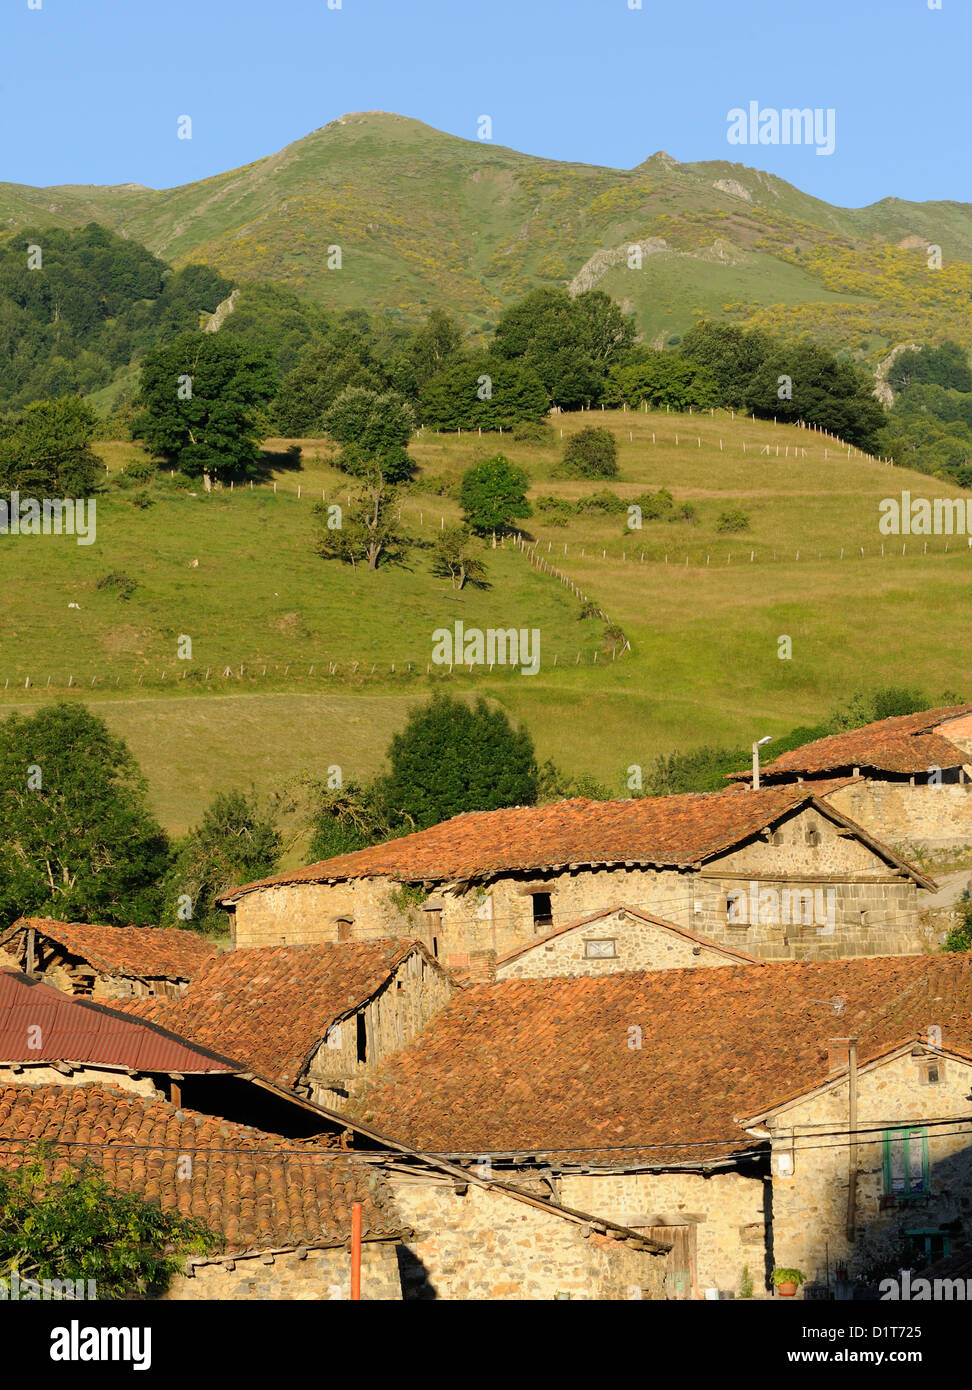 Meadows and mountains above the tiled roofs of the village of Caloca. Caloca, Cantabria, Spain. - Stock Image